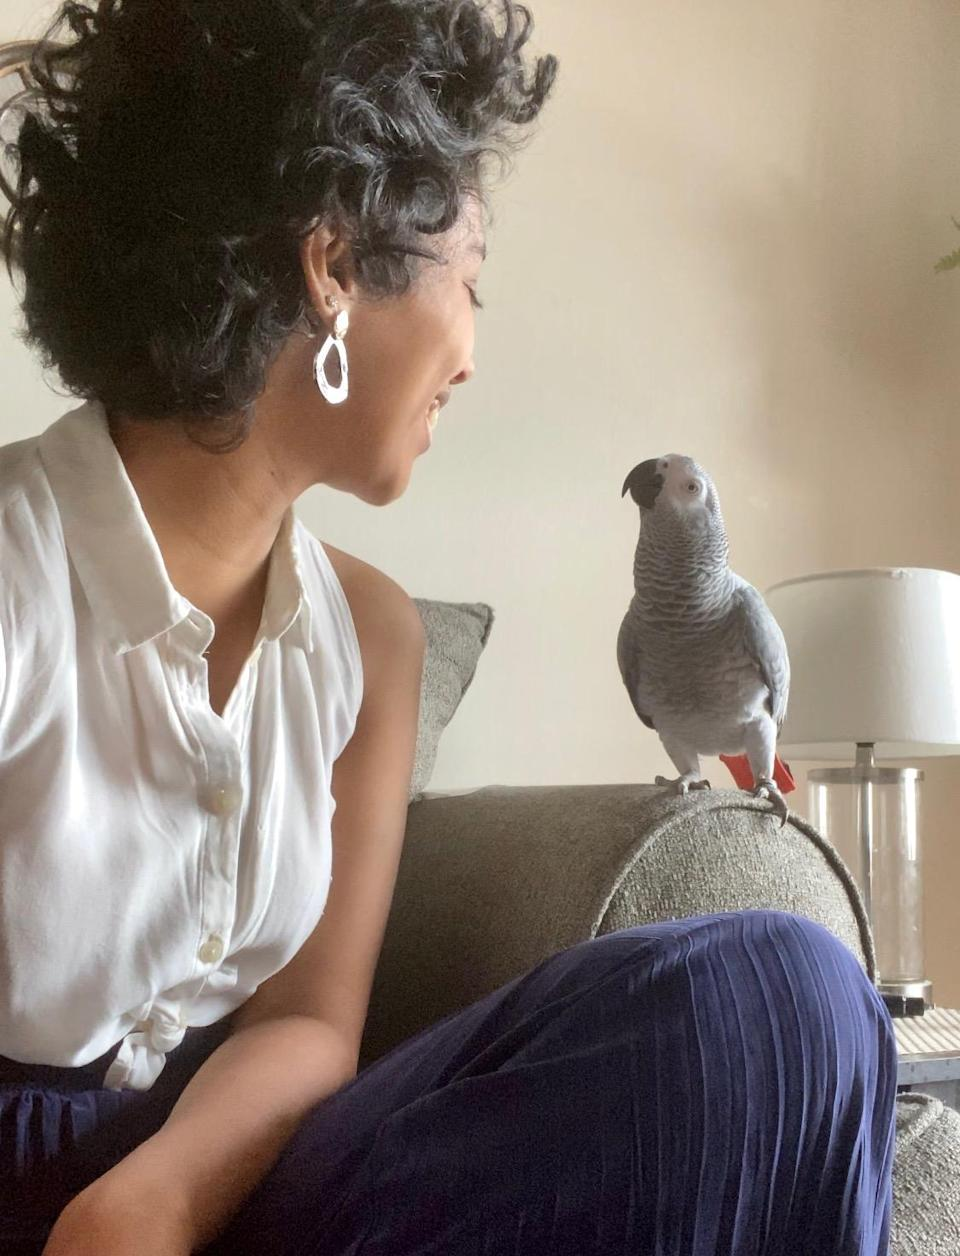 Lenah Alshowaiman of New York City lost her African grey parrot and a stranger reunited them. (Photo: Courtesy of Lenah Alshowaiman)